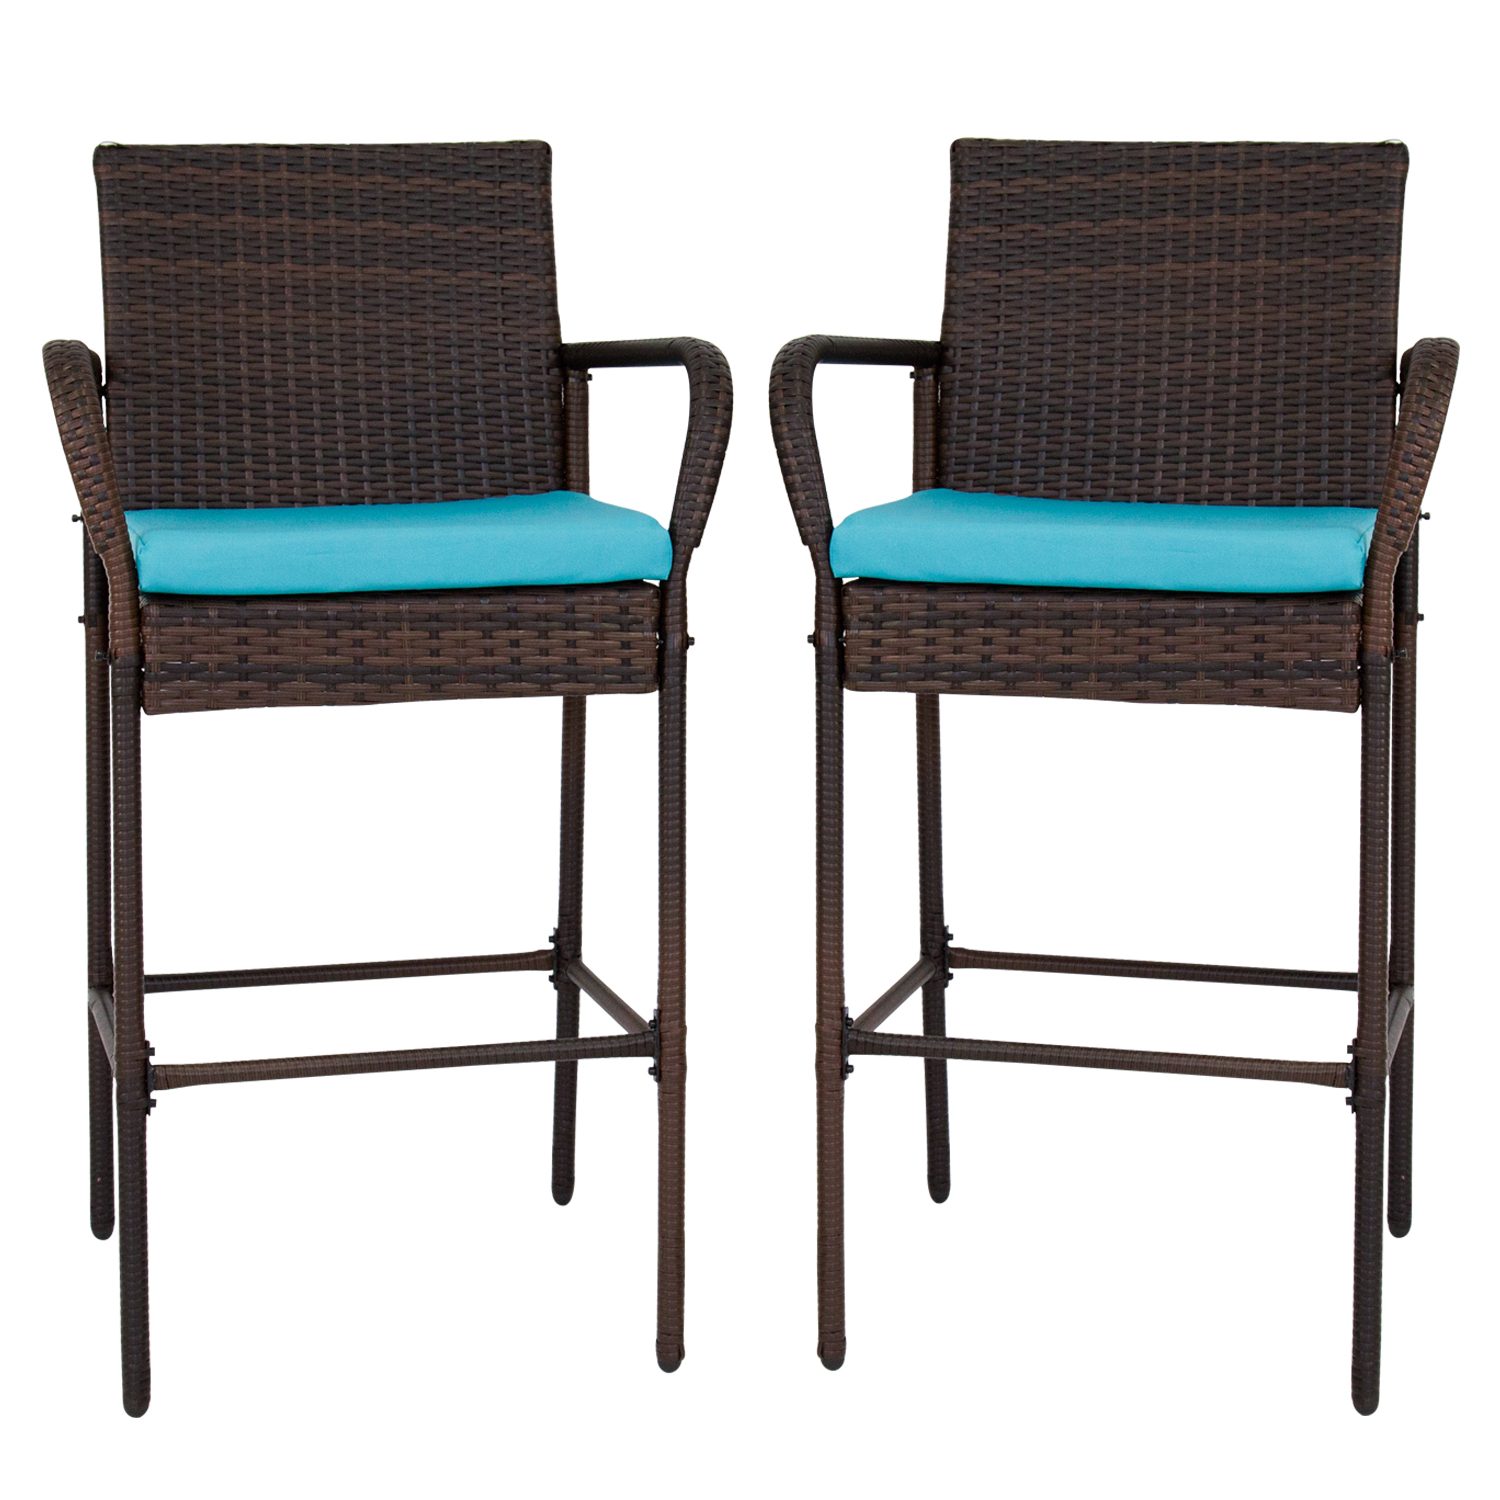 Kinbor Set Of 2 Patio Outdoor Wicker Barstool Set Pool